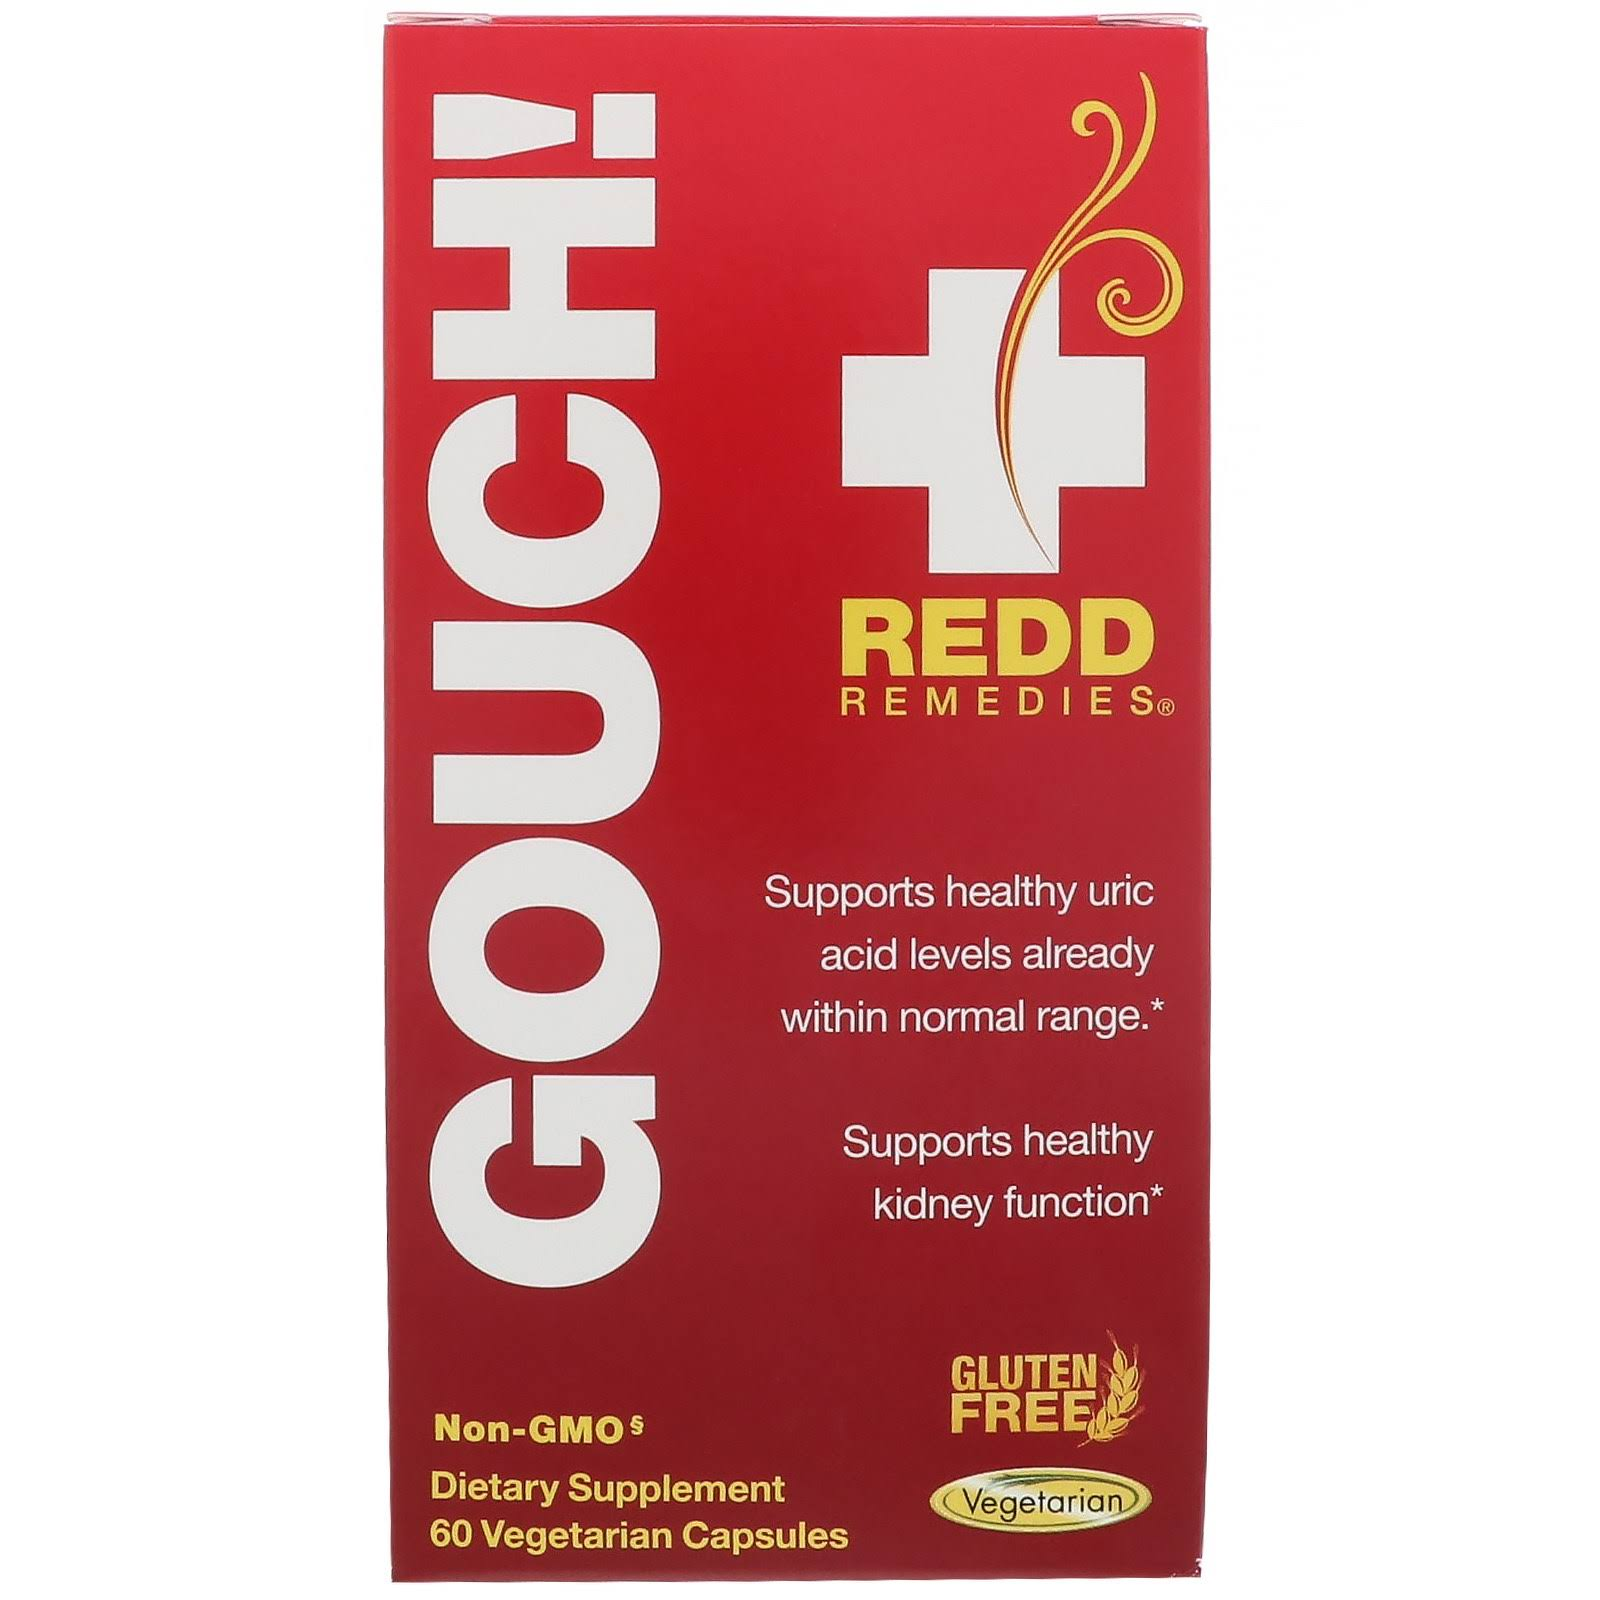 Redd Remedies Gouch 60 Capsules